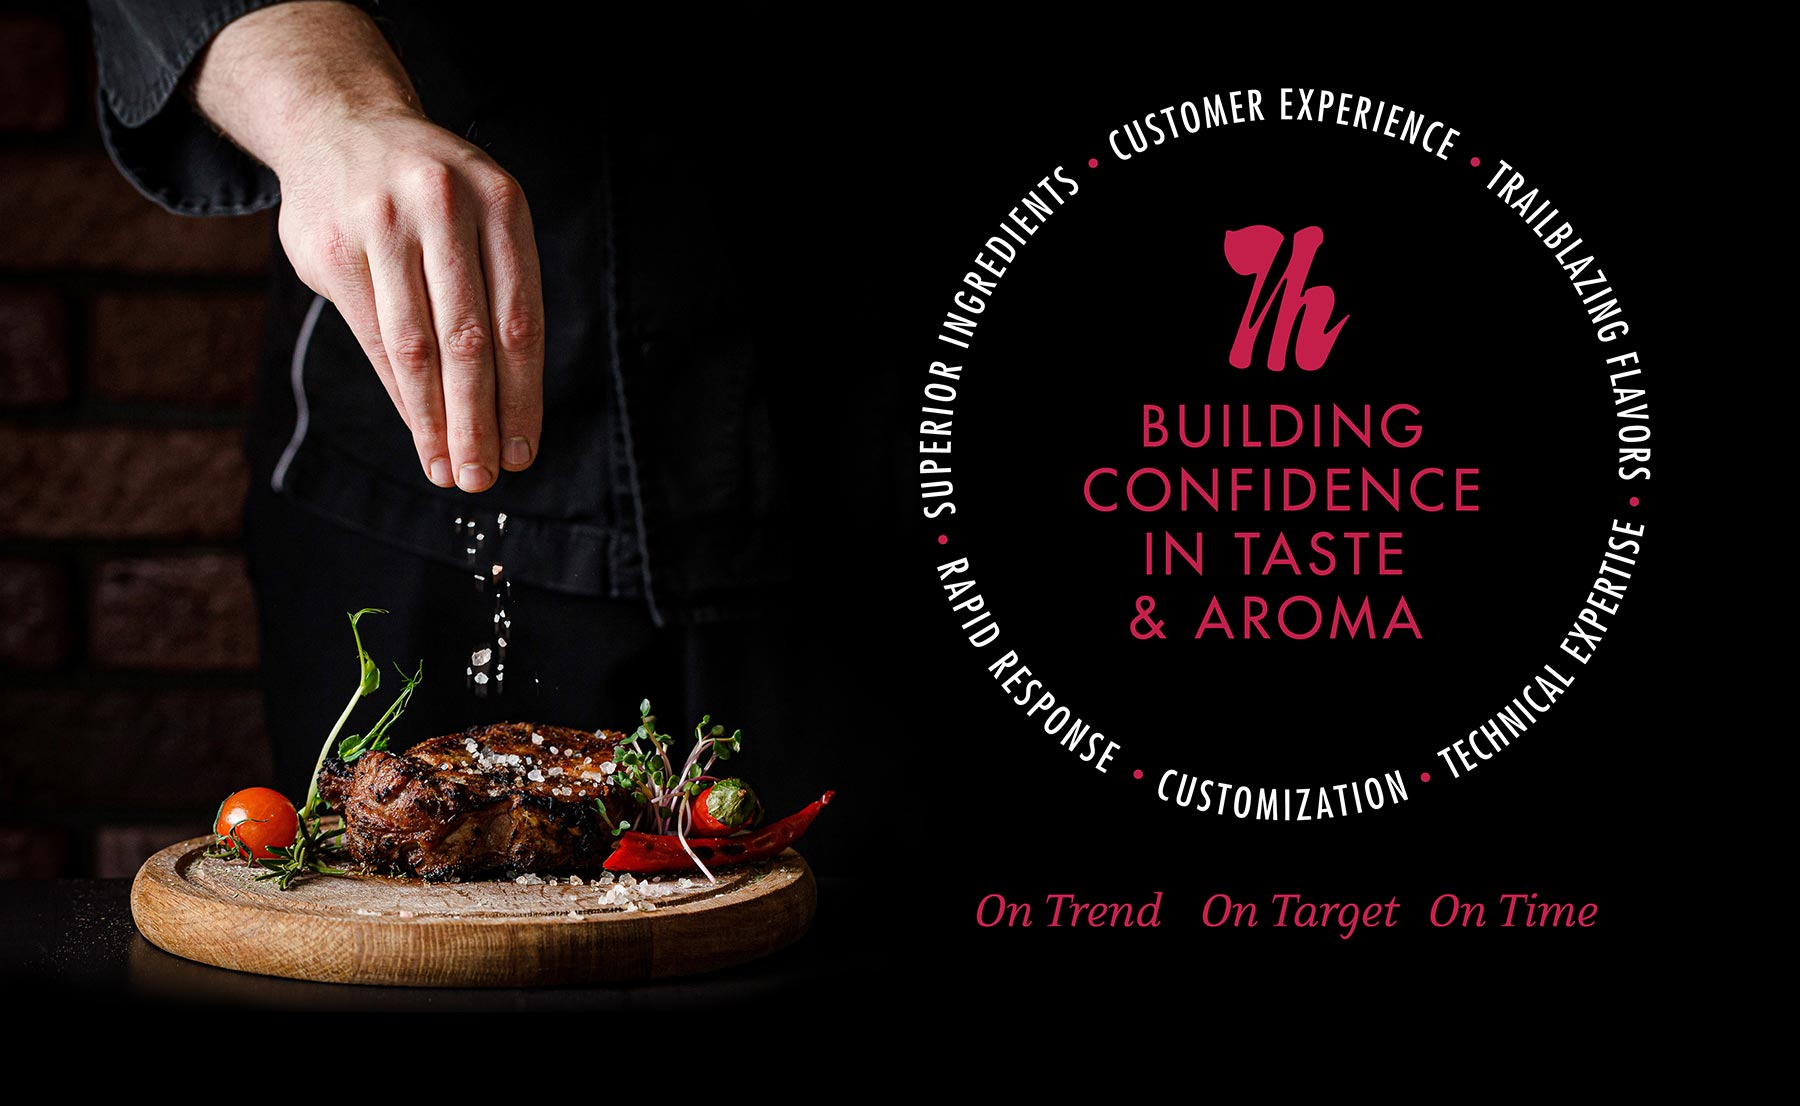 Building Confidence in Taste and Aroma